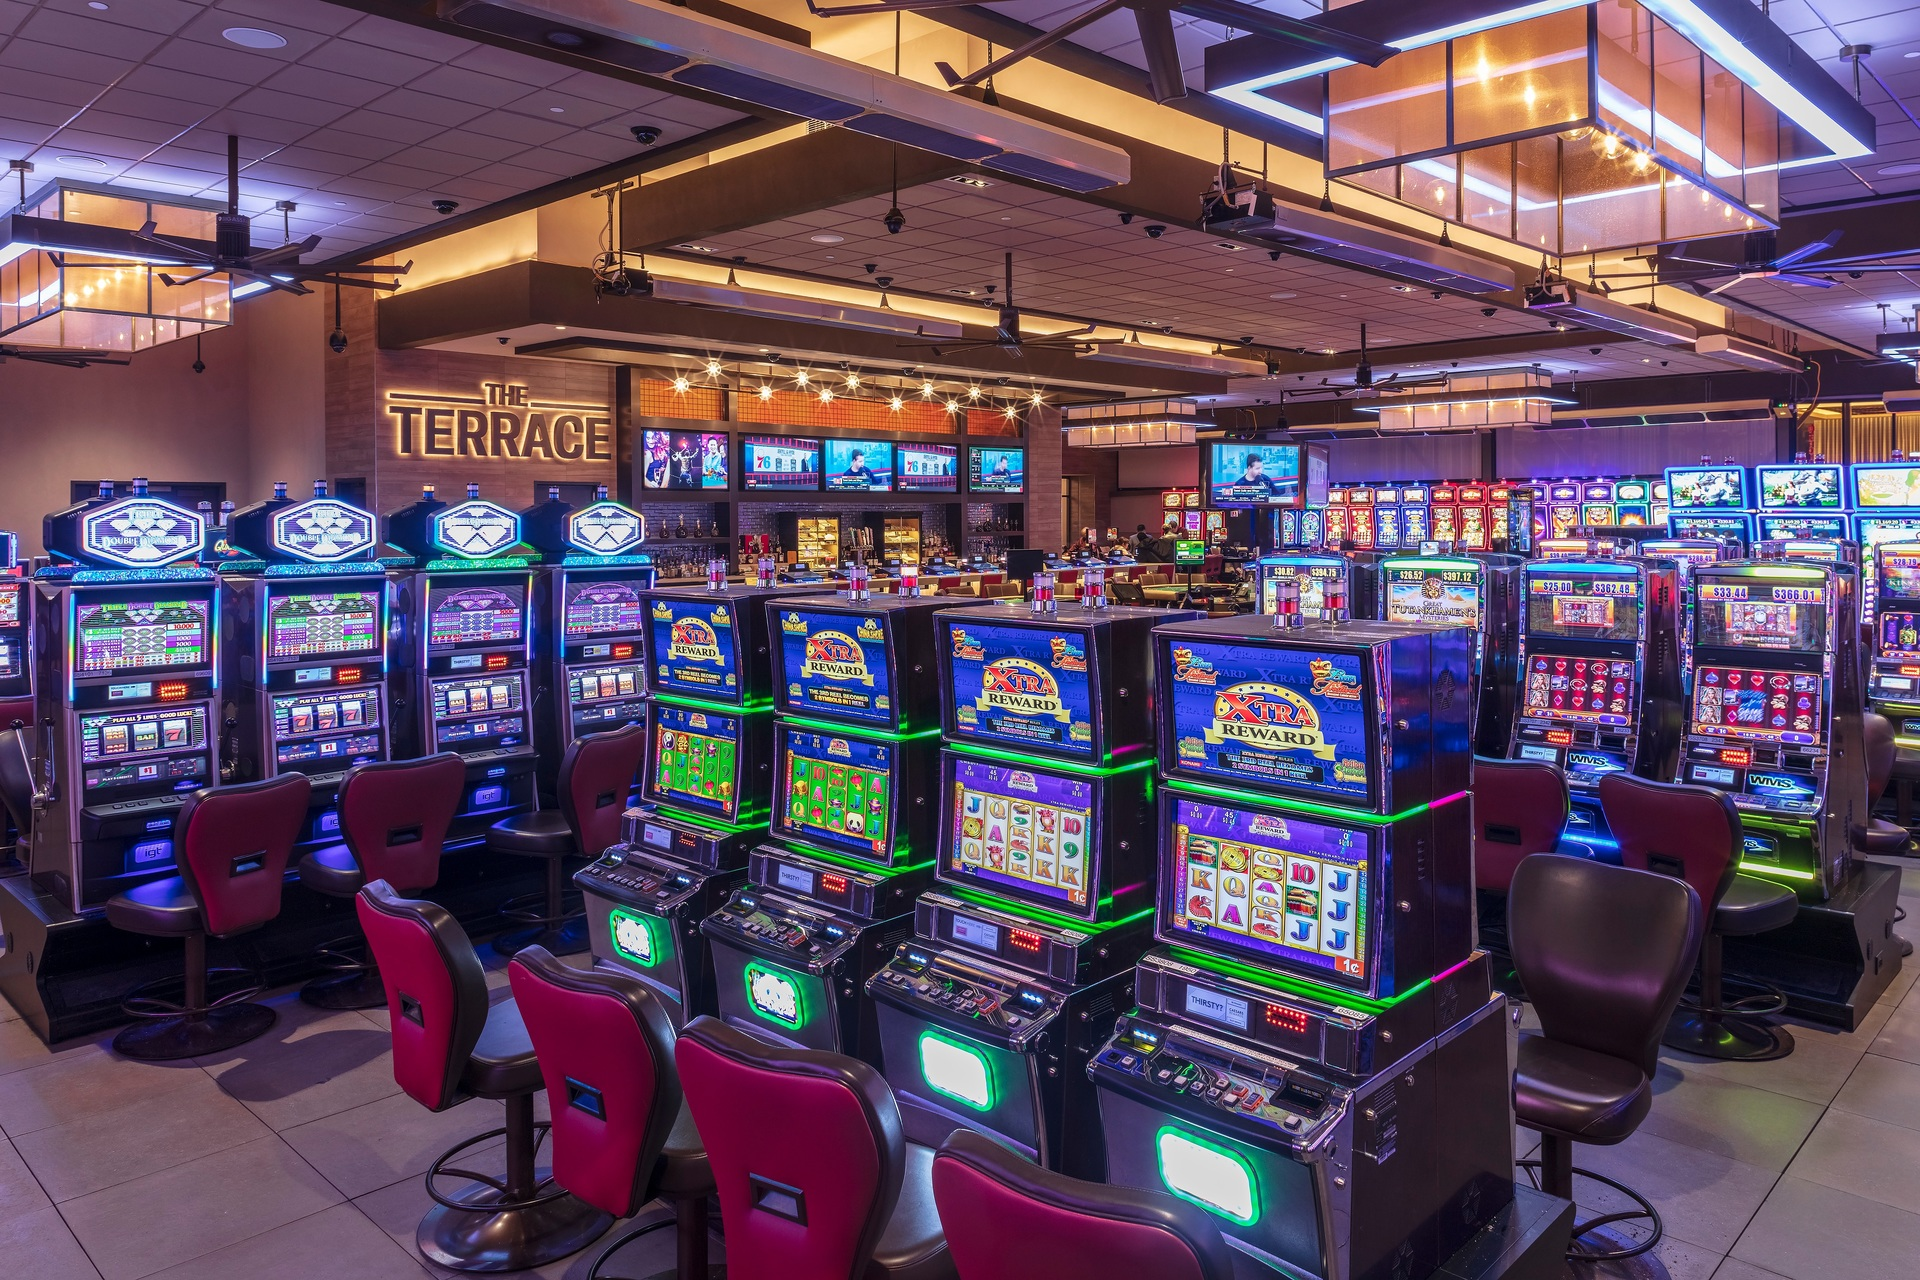 By continuing raised access floors from the indoor gaming area to the outdoor Terrace, Horseshoe Casino was able to replicate their indoor underfloor service distribution outside. This is an important feature for casinos that need easy access to power and the ability to rearrange game layouts often to keep up with trends and technology upgrades.